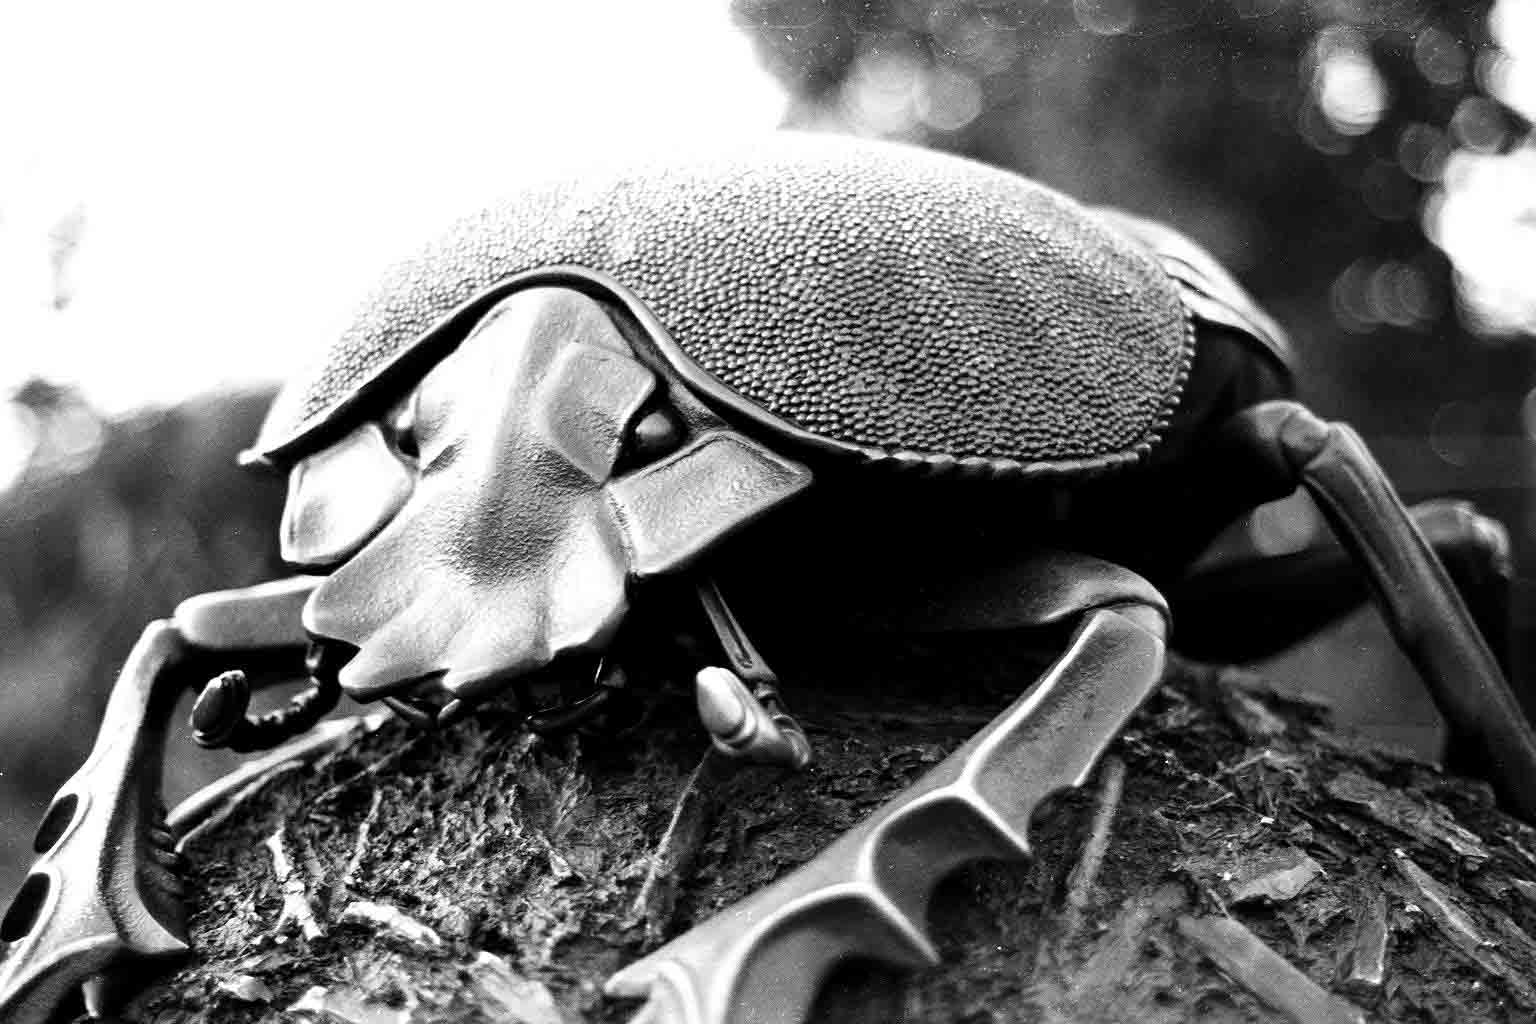 dung beetle in black in white